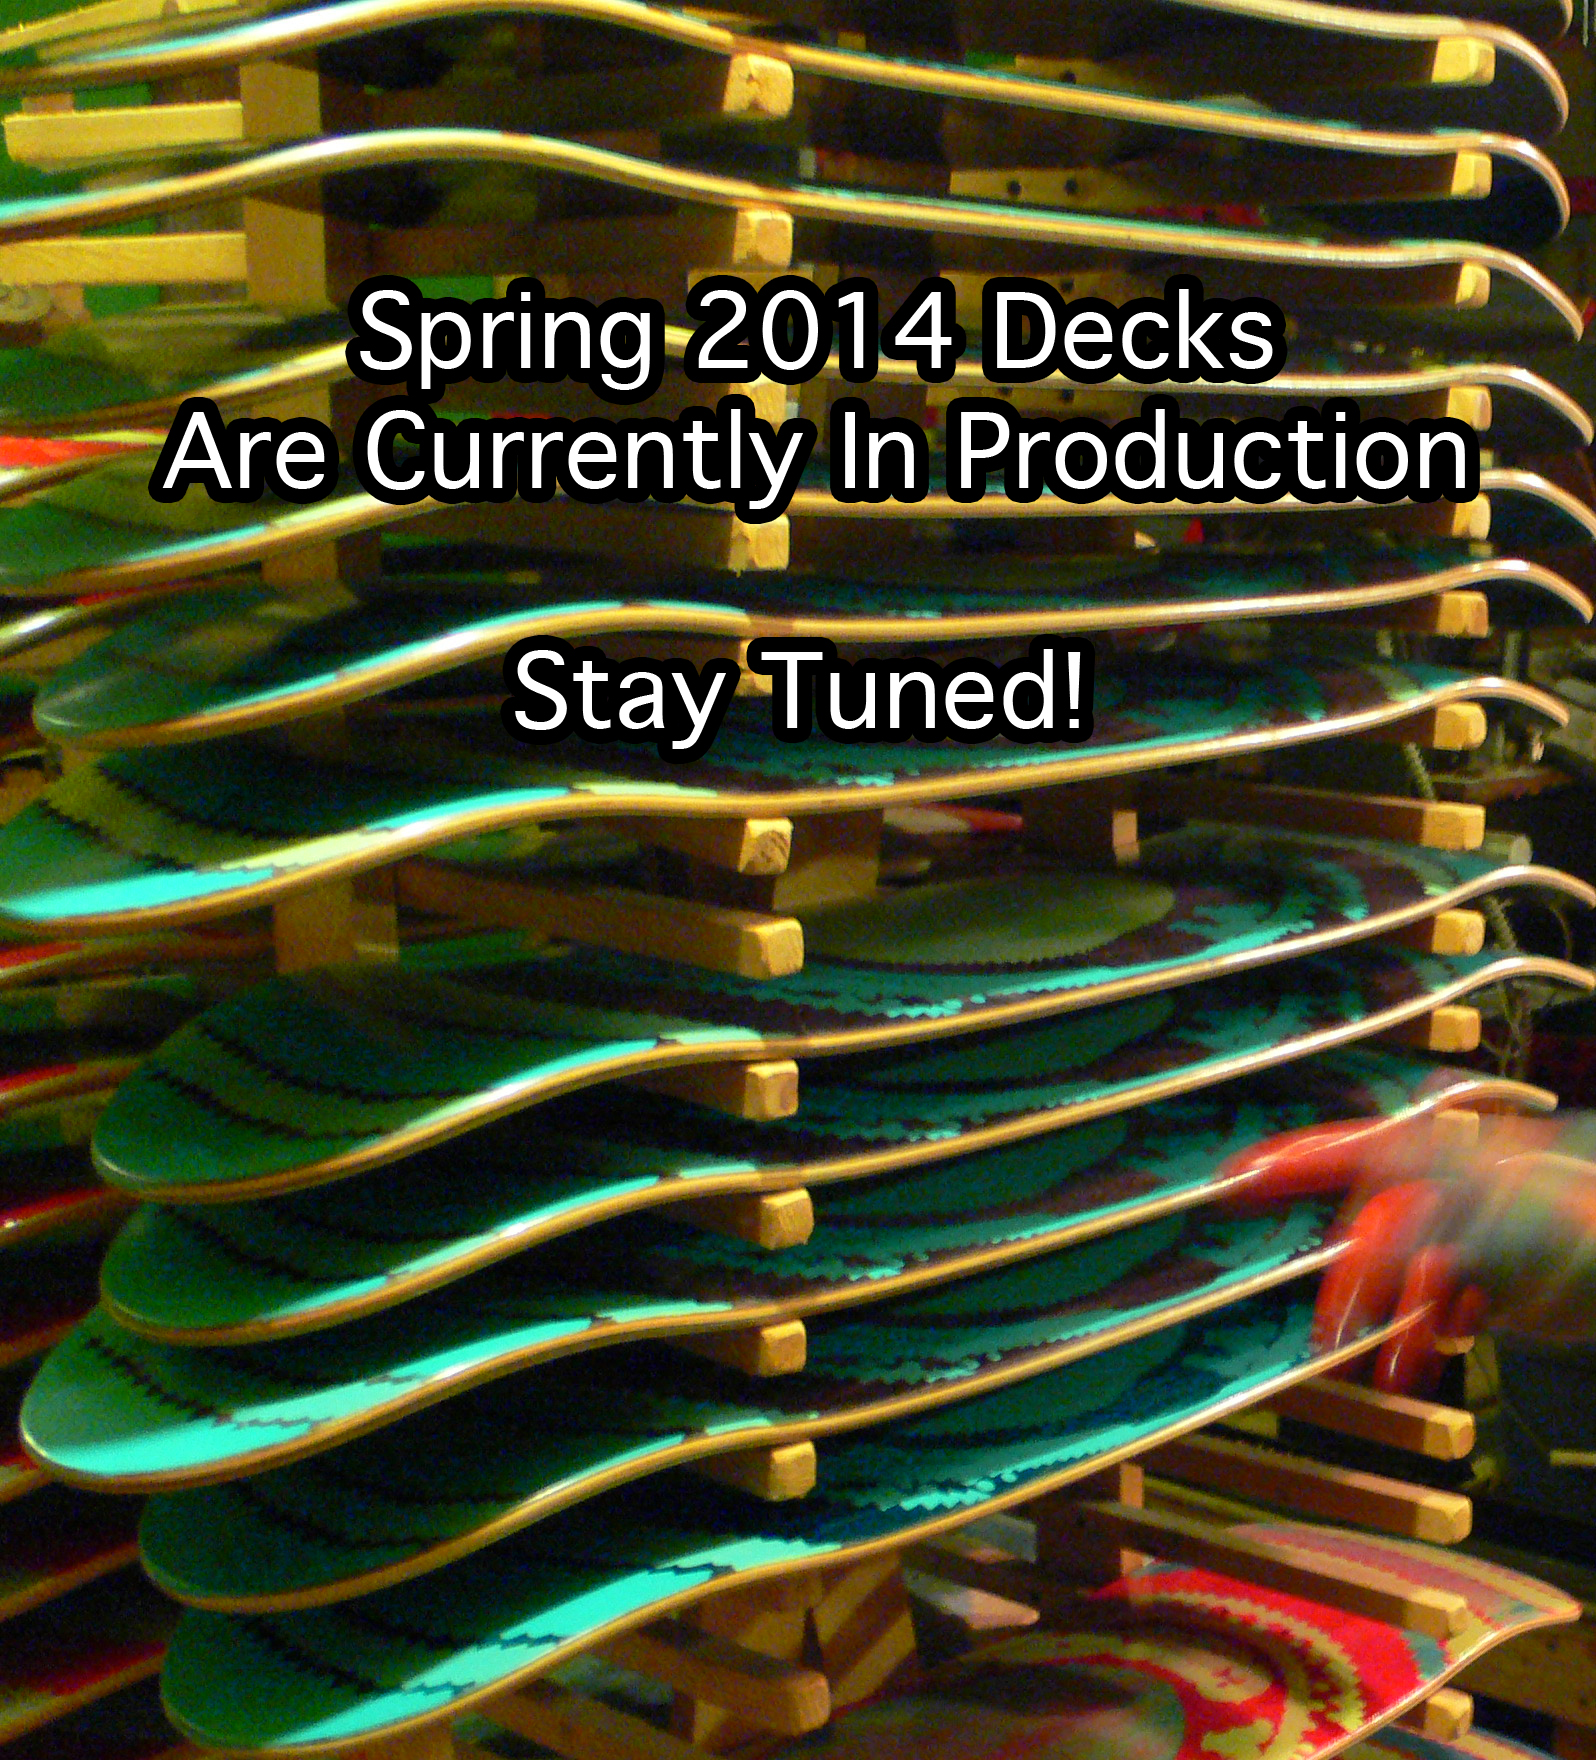 decks-in-production.jpg